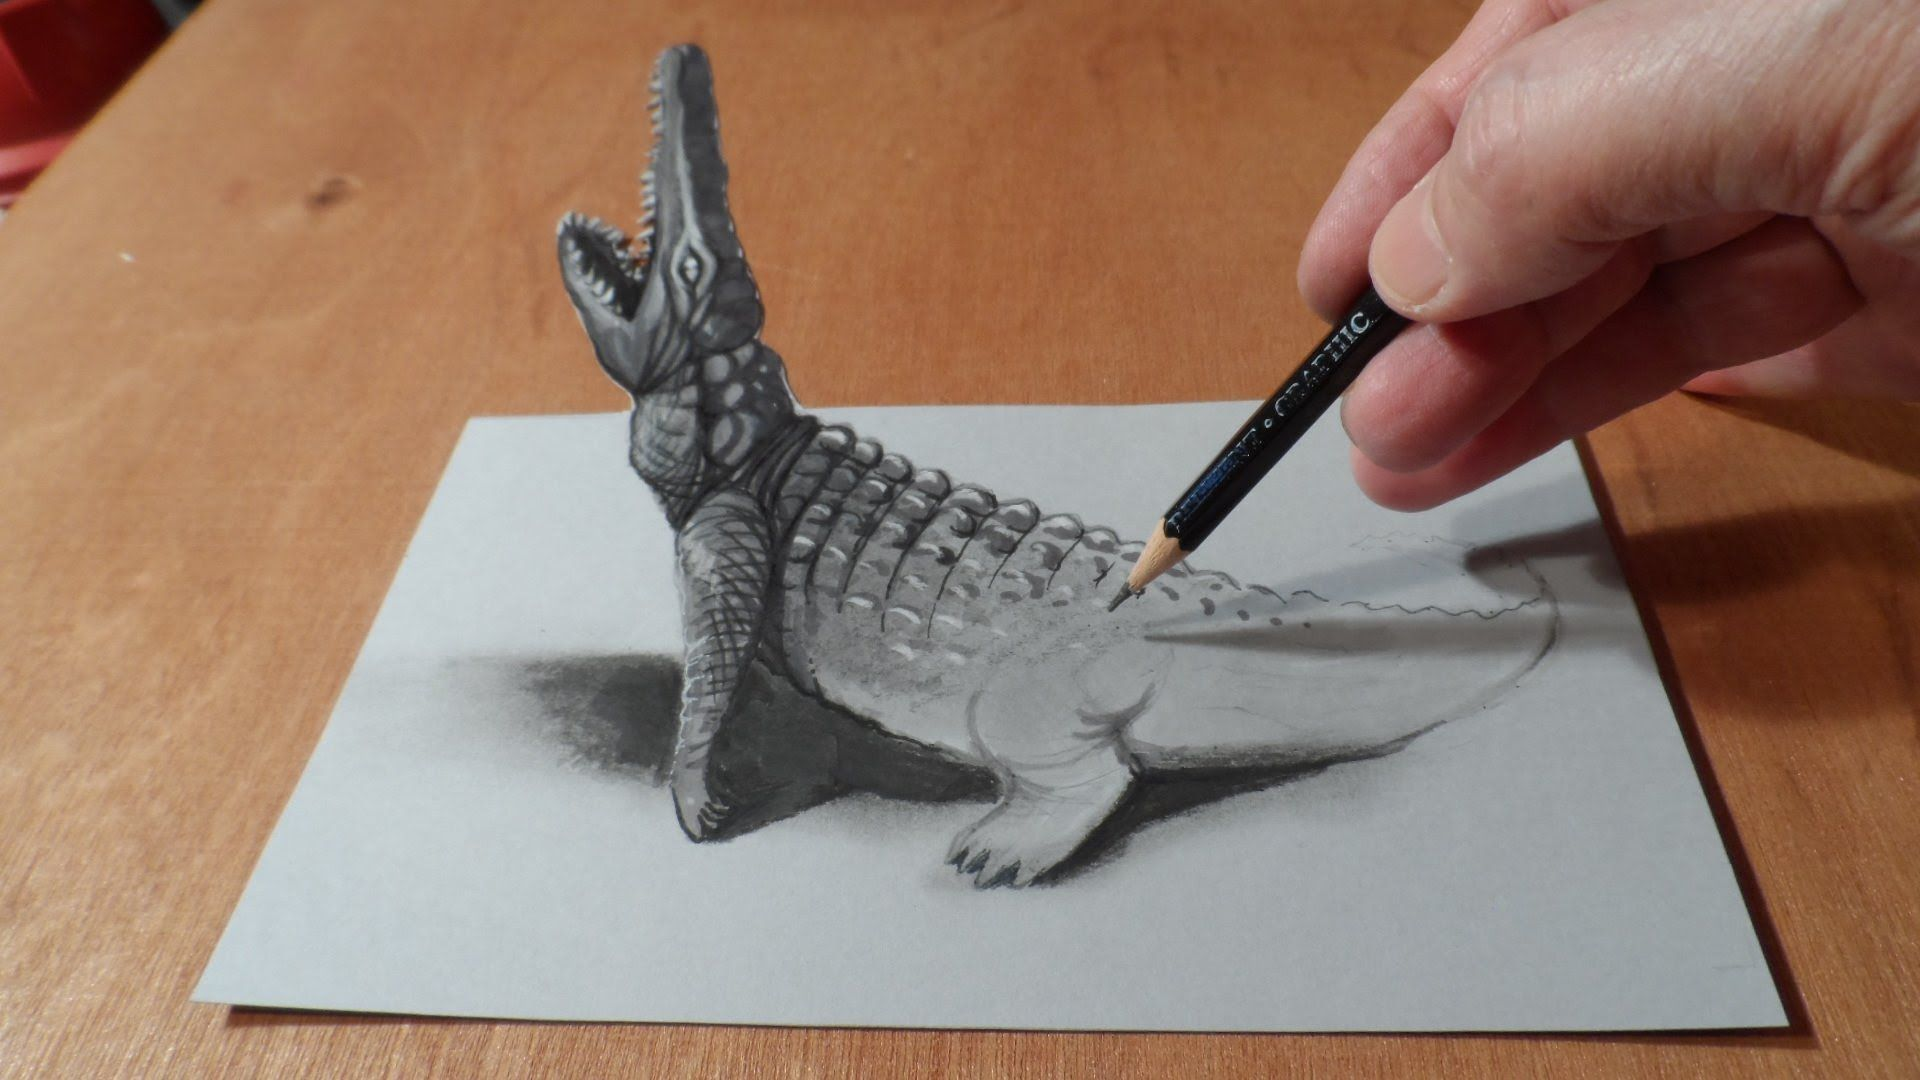 forced perspective drawing, make it look like it is coming off the